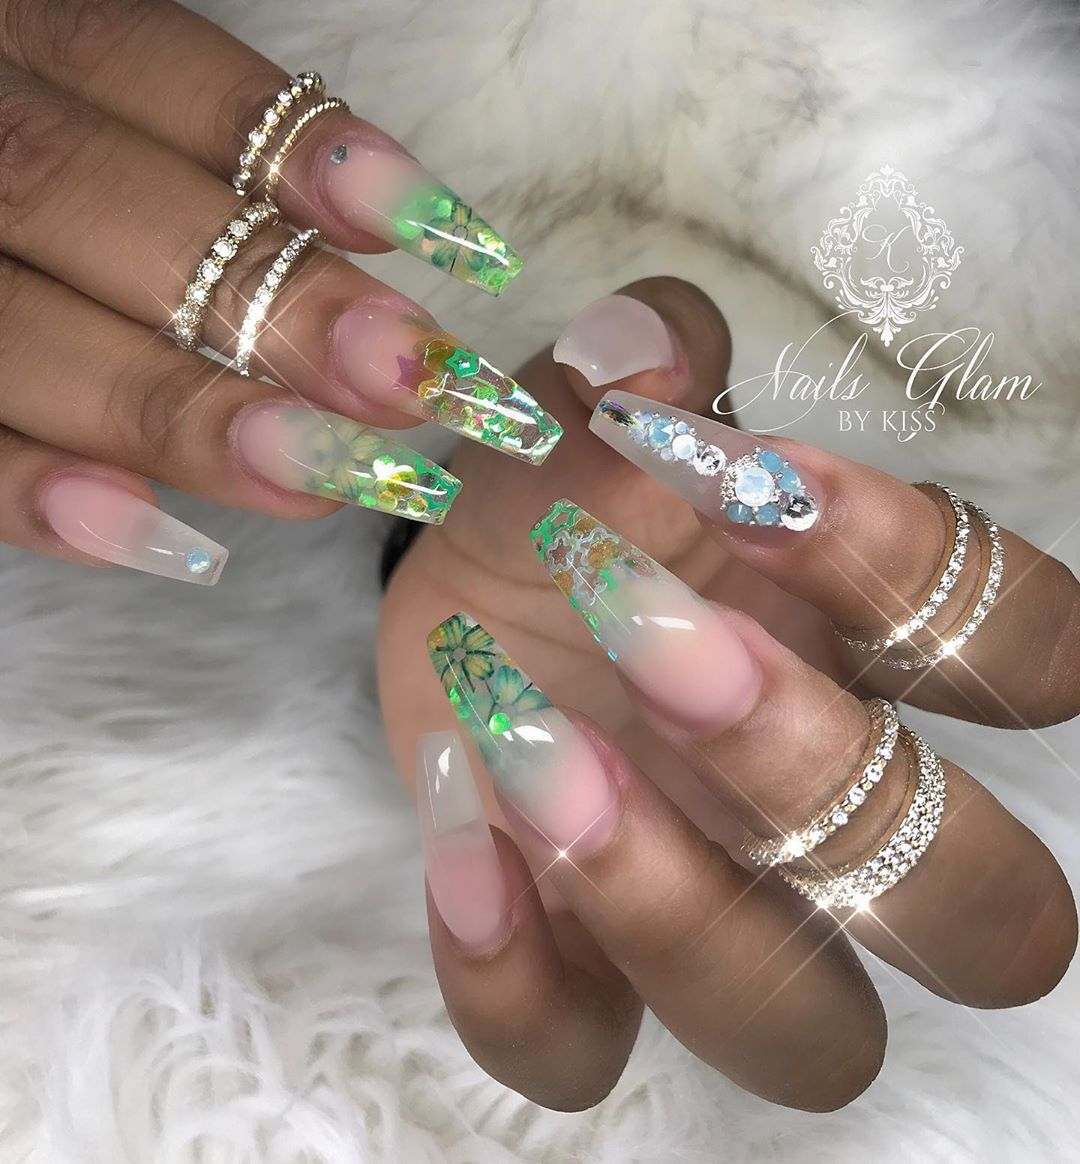 Green ombr with flowers inside ....nailsdone